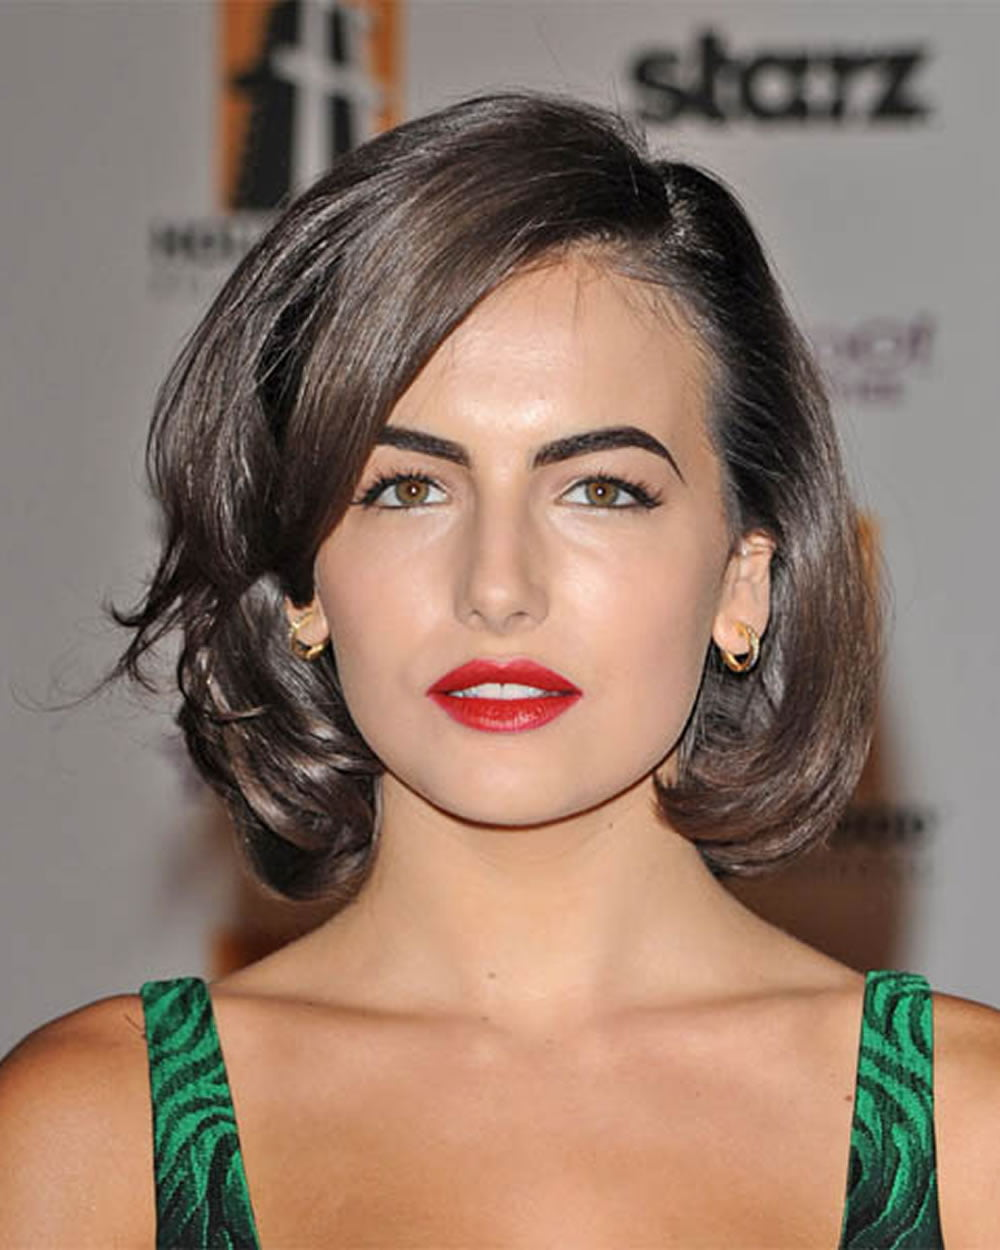 Short Haircuts 2019 : Pixie and Bob Hairstyles for Short Hair 2019 – Page 3 – HAIRSTYLES